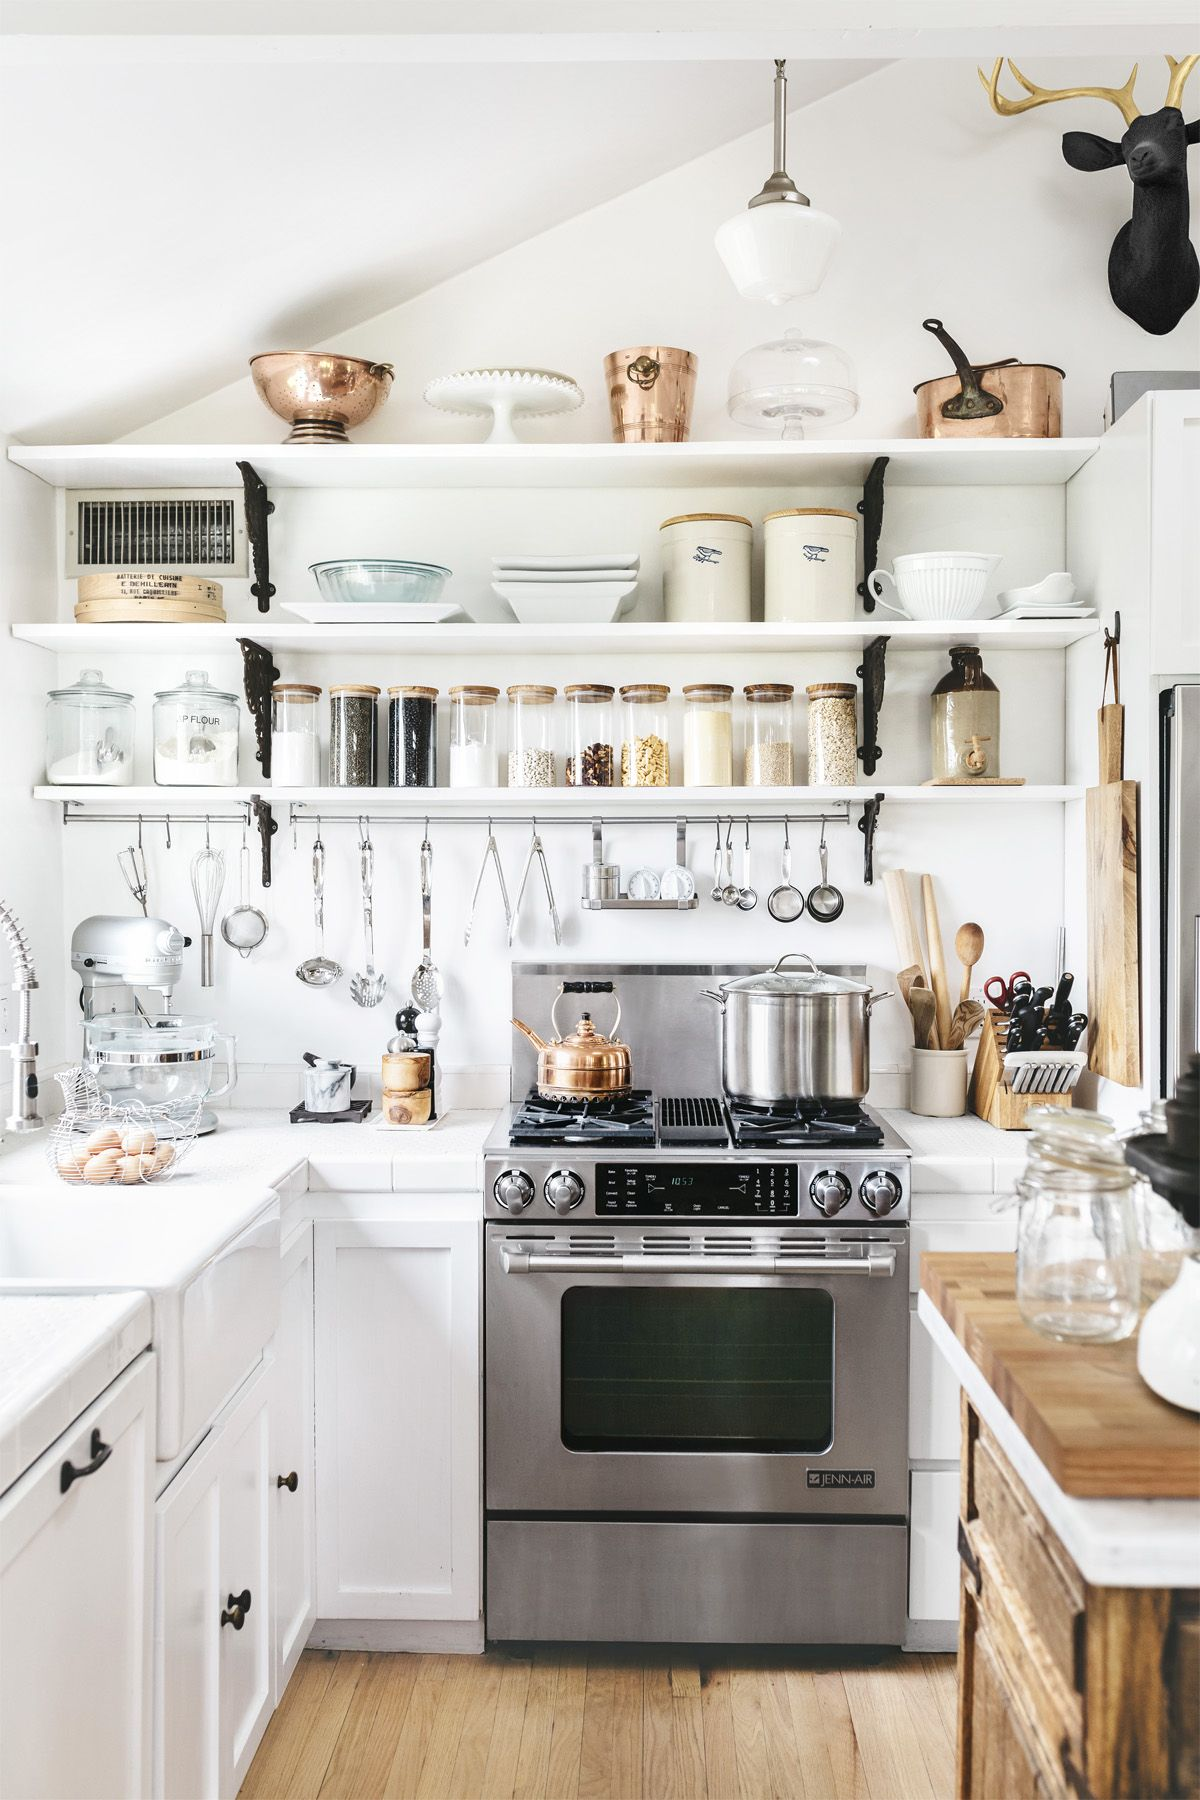 White country kitchen designs Classic Country 24 Ideas For Decorating Kitchen With White Country Living Magazine 24 Best White Kitchens Pictures Of White Kitchen Design Ideas